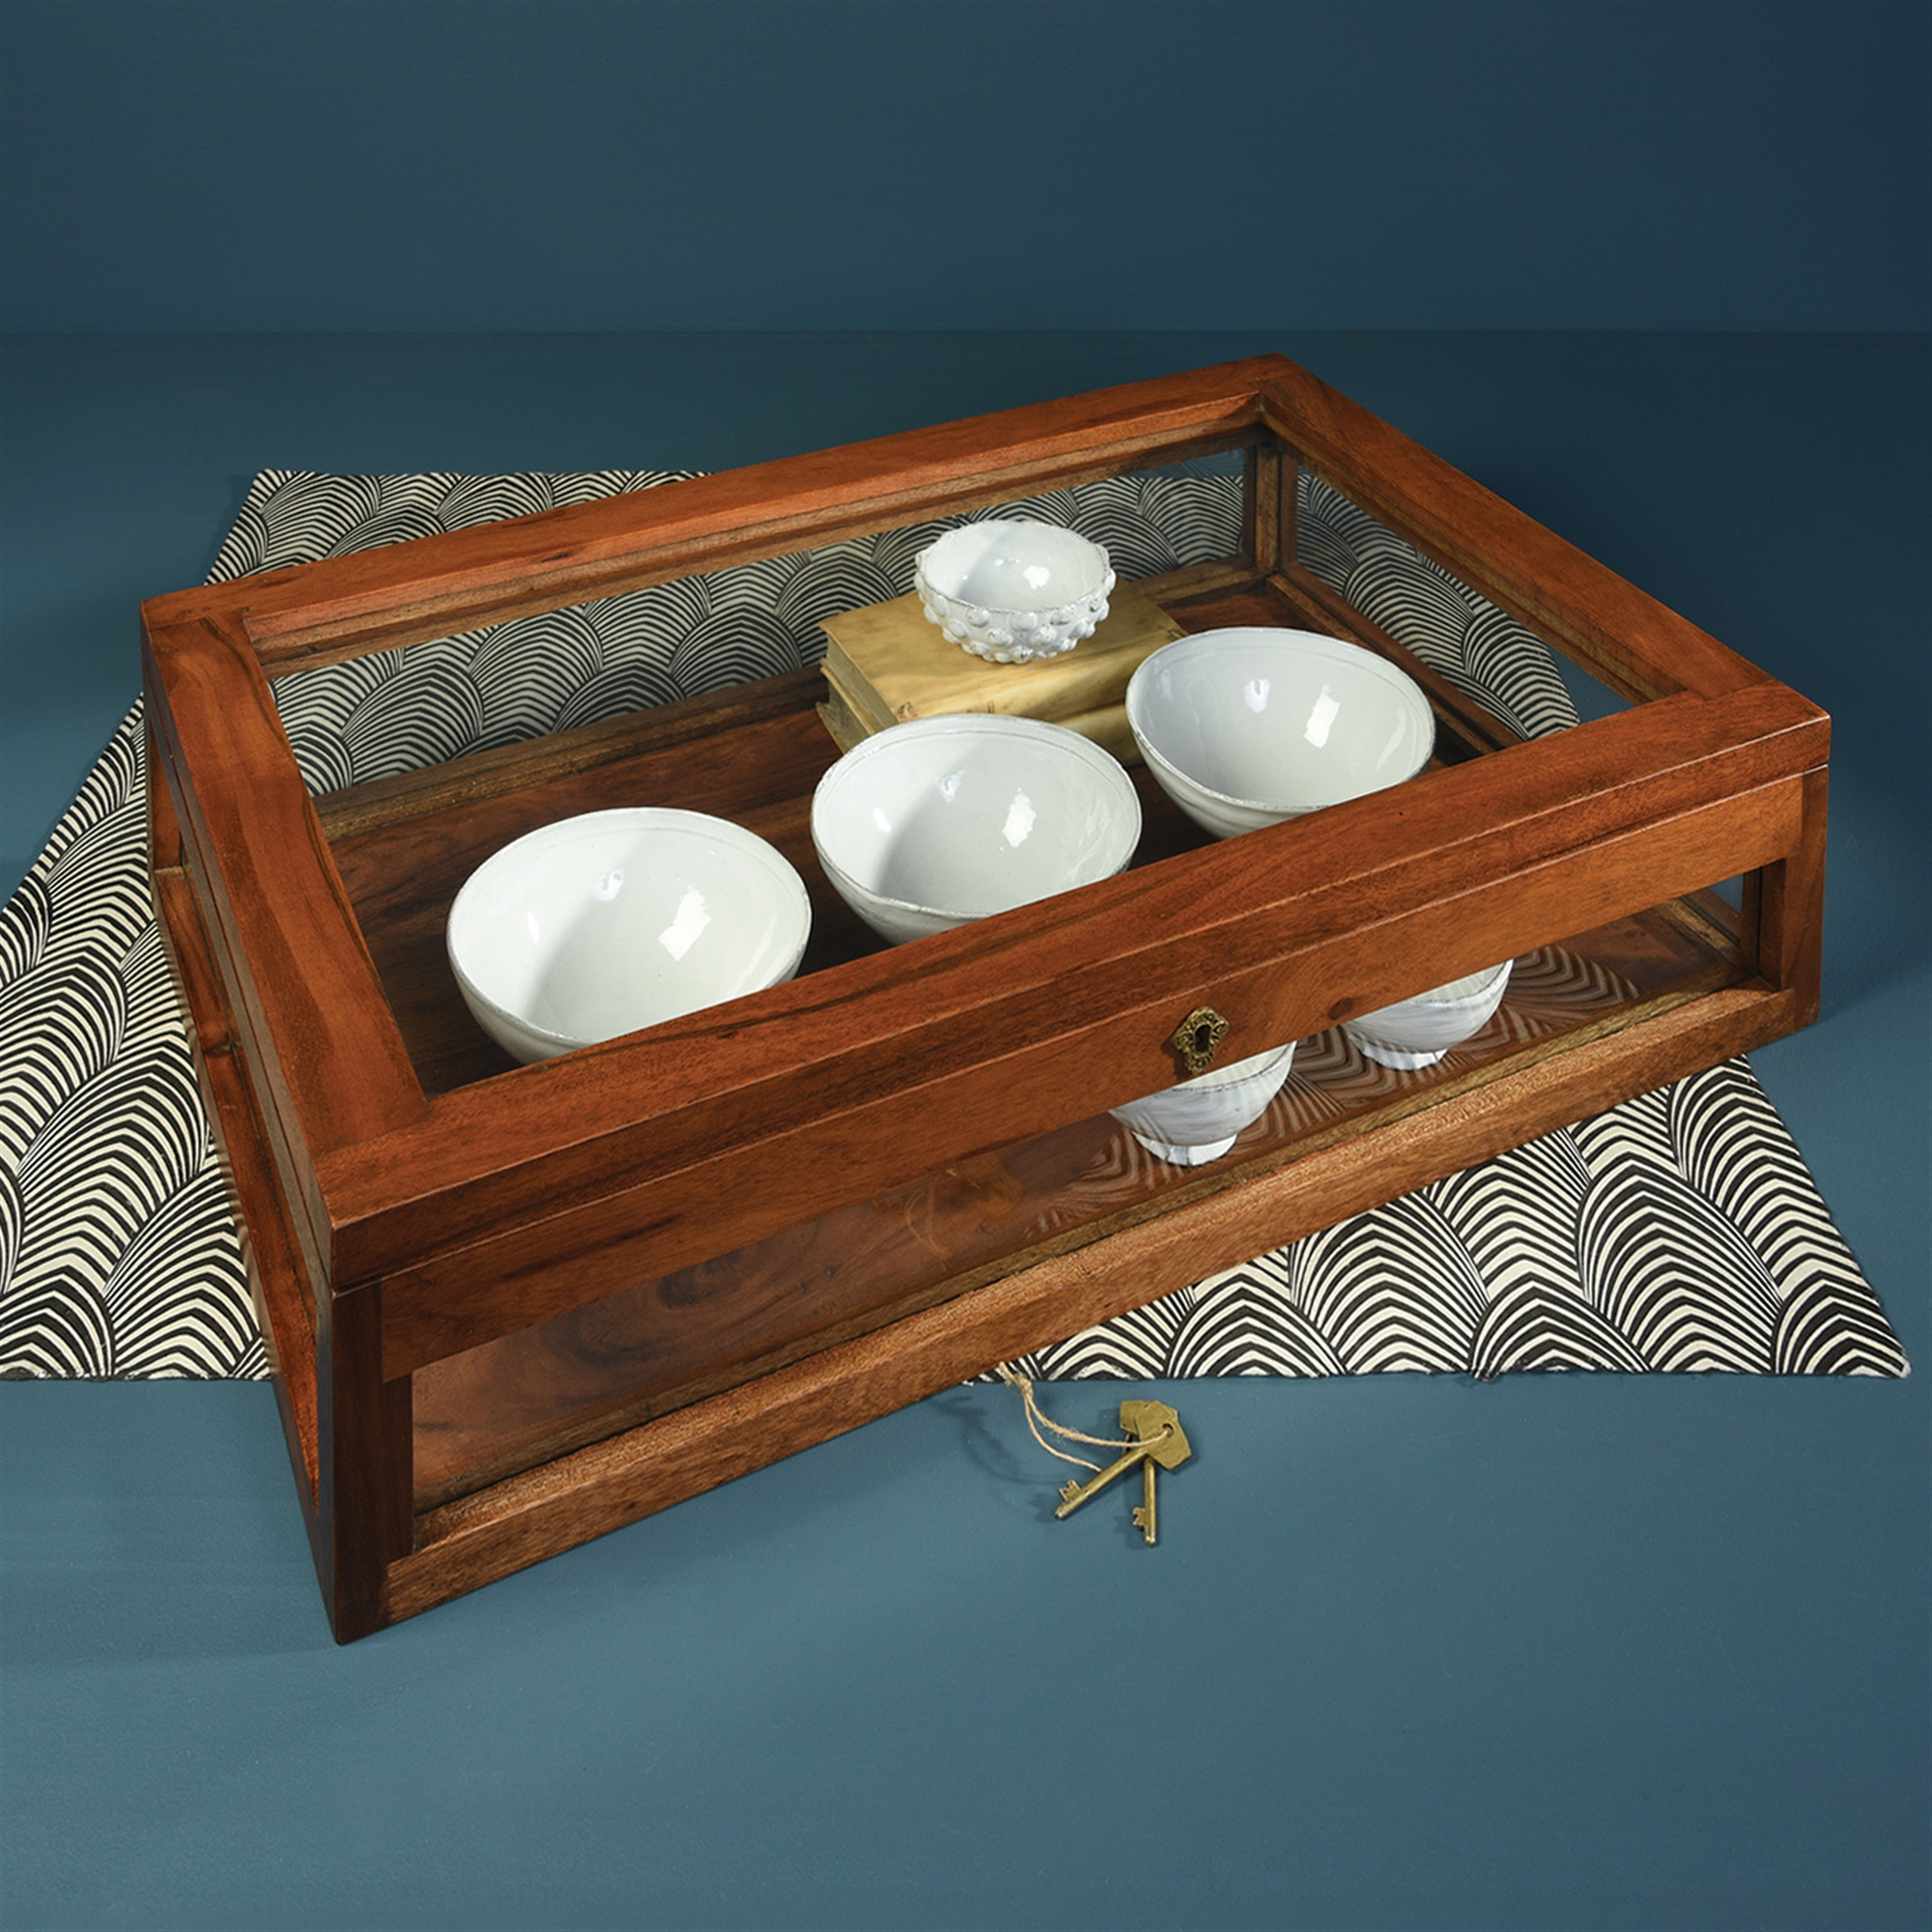 Wood Plate Display Case - Rectangular